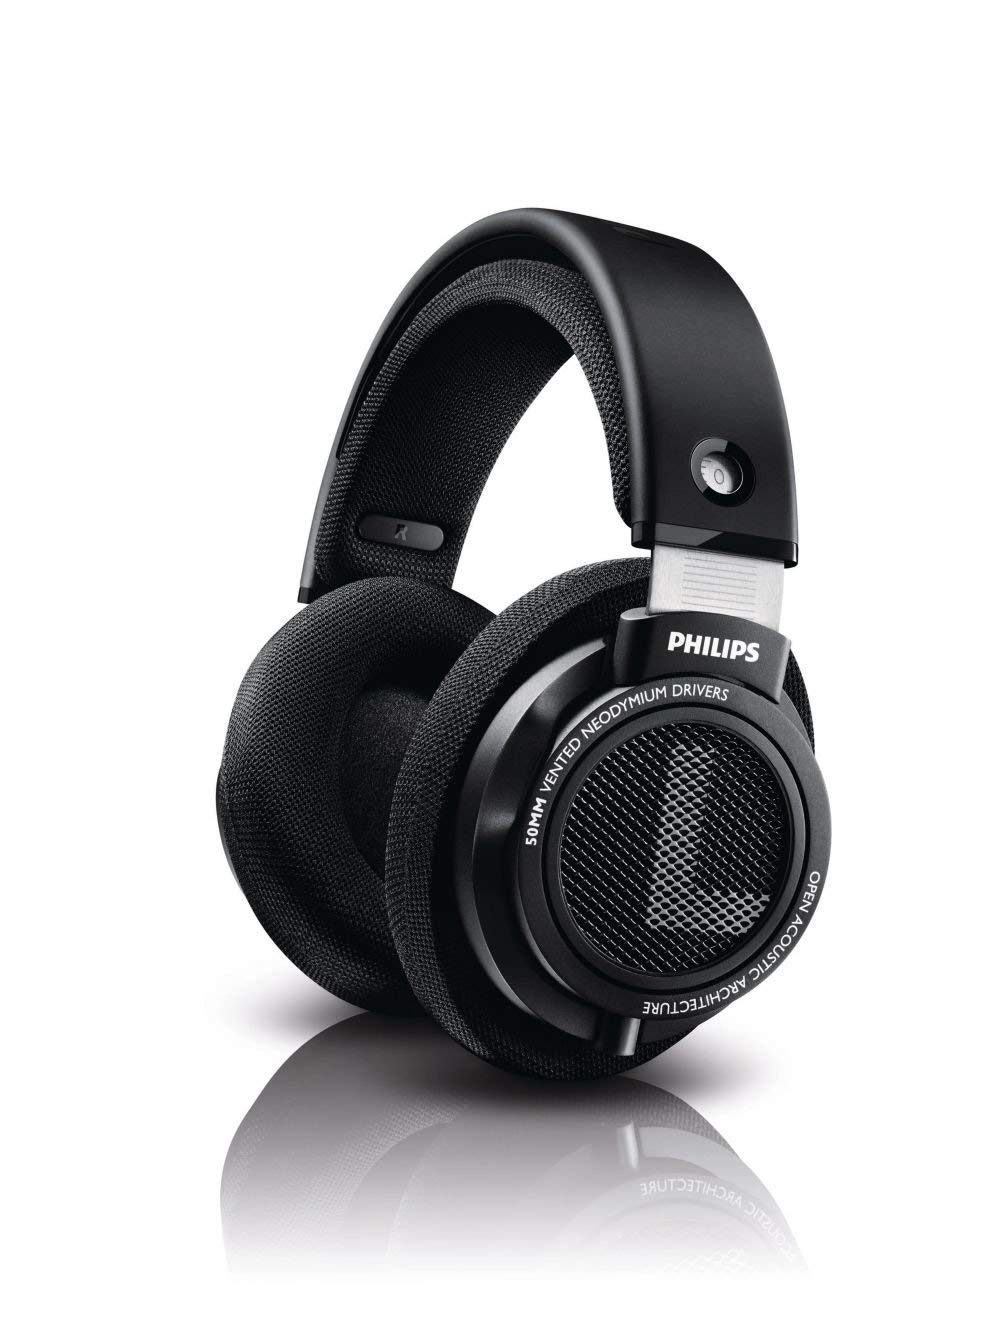 20840cd0a7f Philips SHP9500 HiFi Precision Stereo Over-ear Headphones adaptive noise  cancelling free shipping